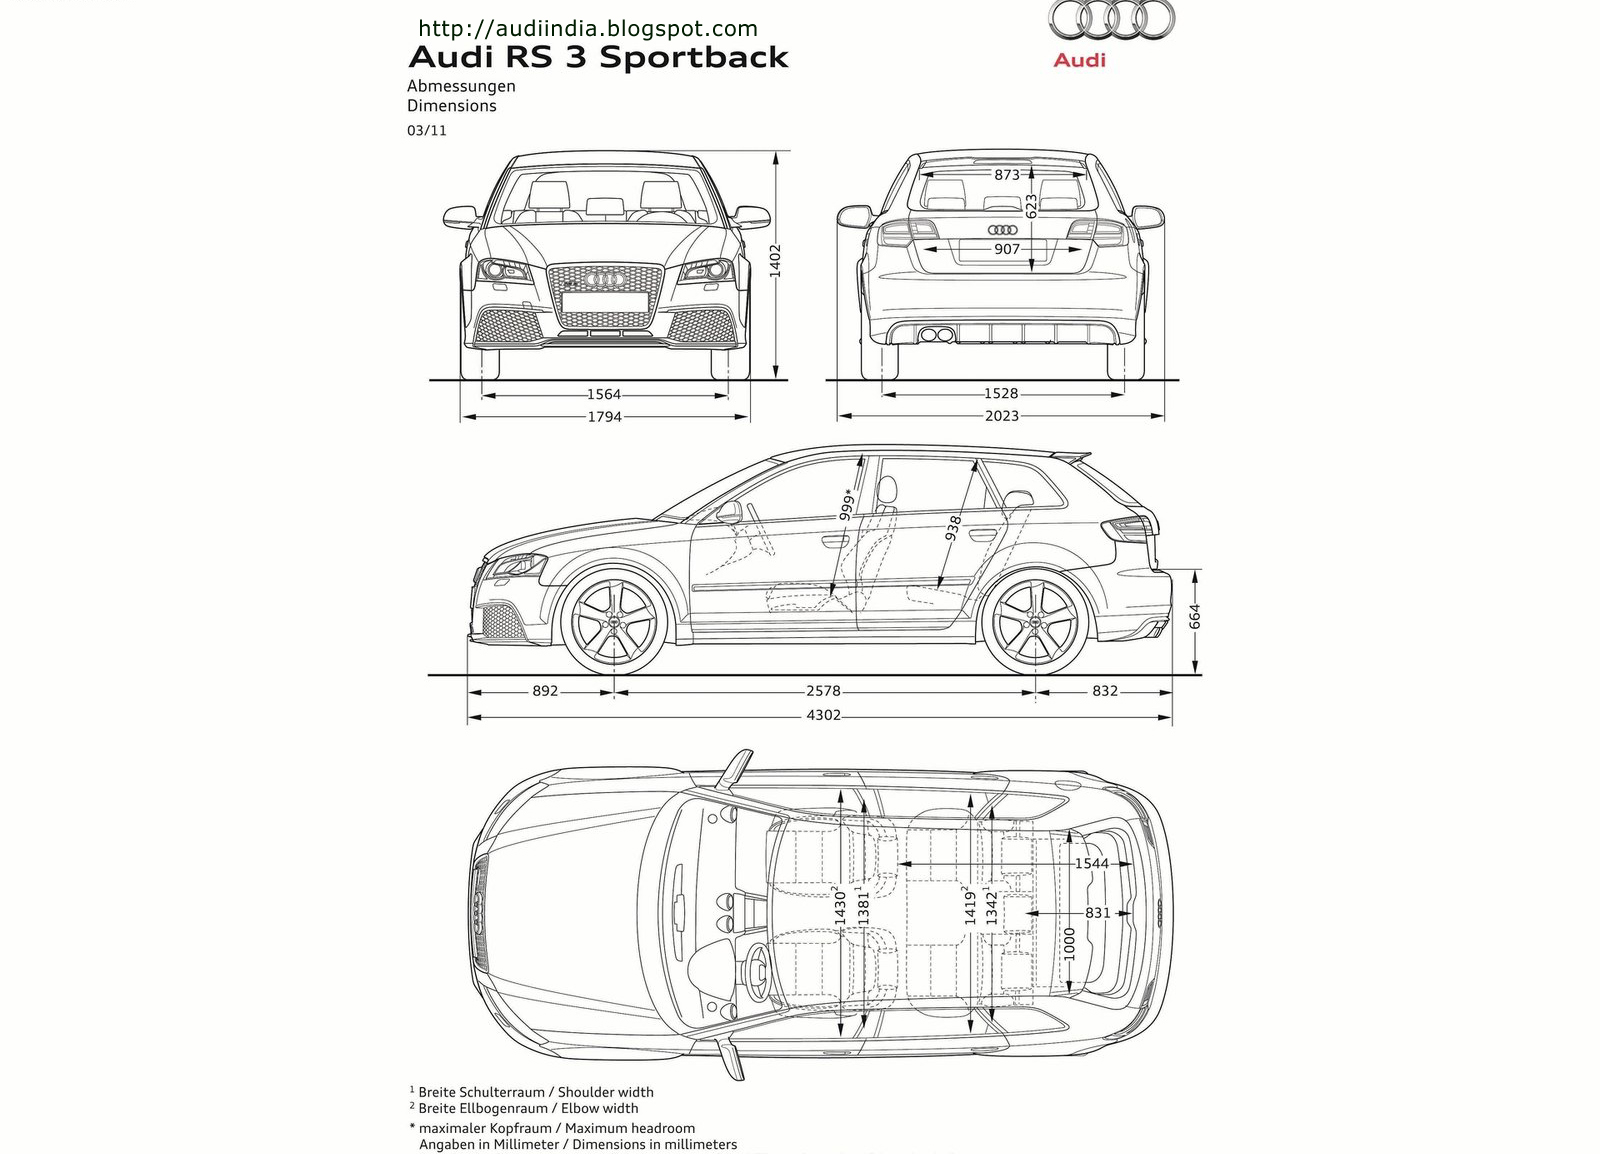 2012 audi rs3 sportback technical specifications wallpapers images the world of audi. Black Bedroom Furniture Sets. Home Design Ideas